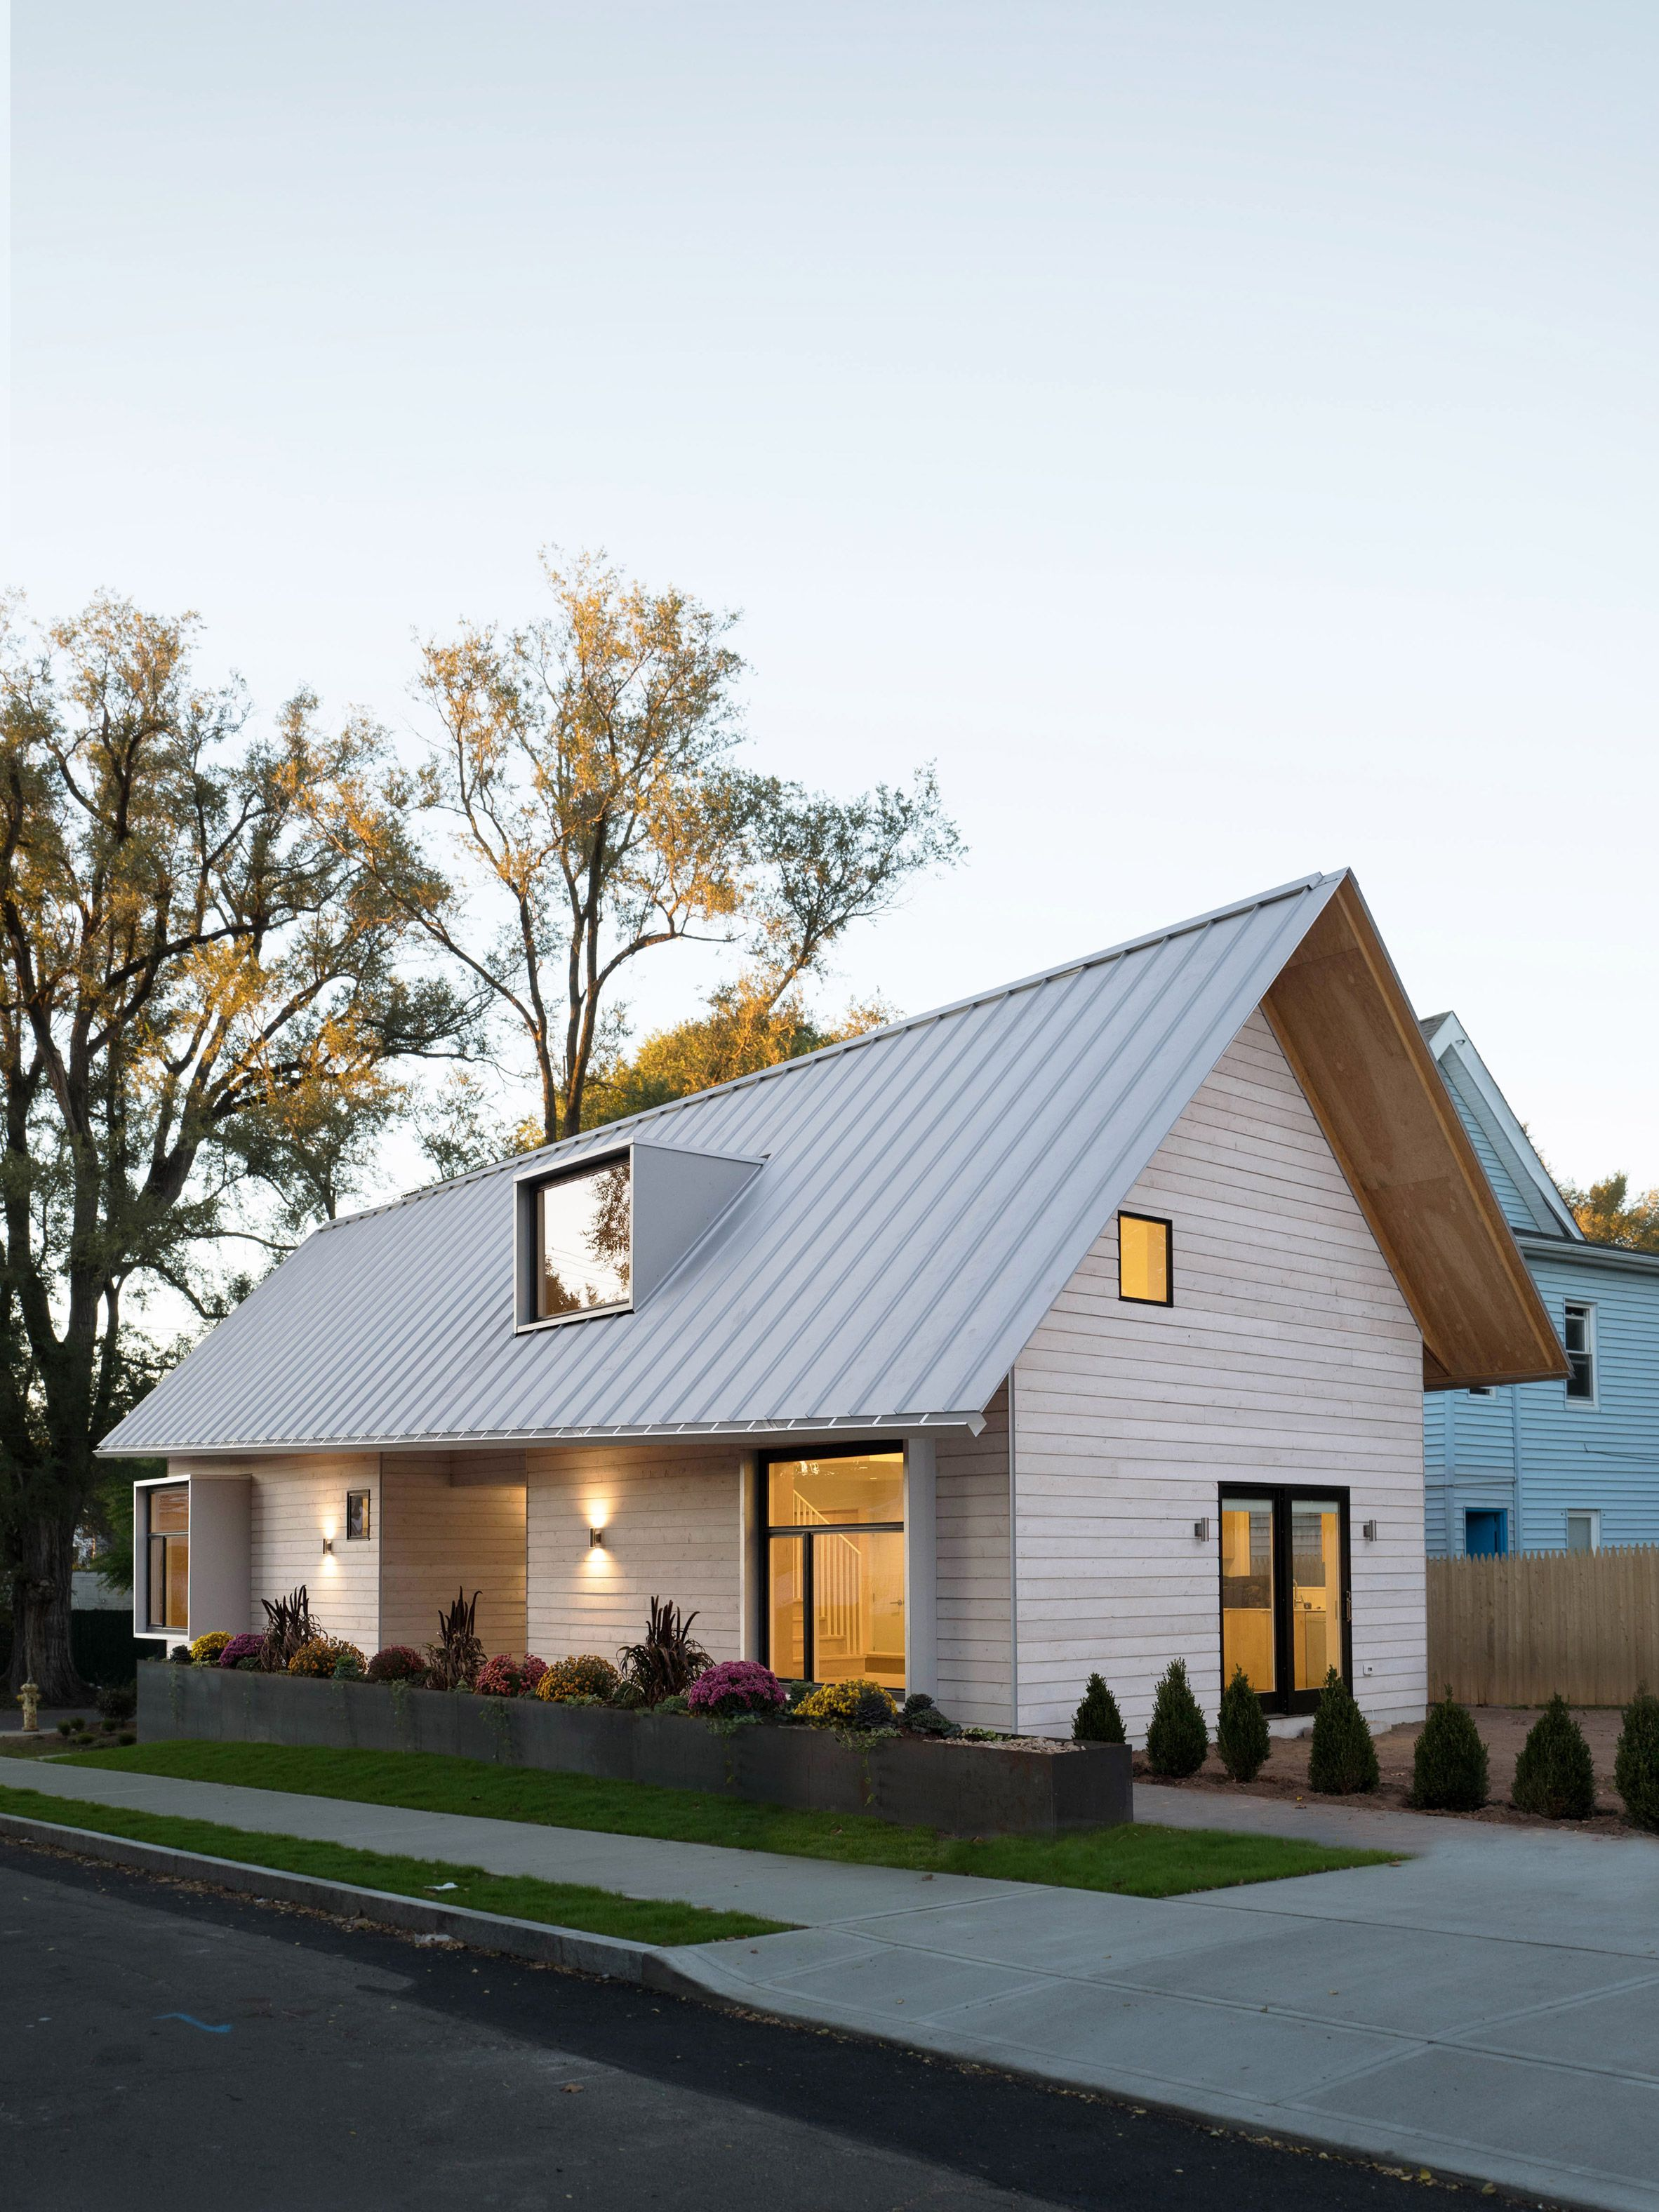 Yale architecture students create dwelling in Connecticut for the ...